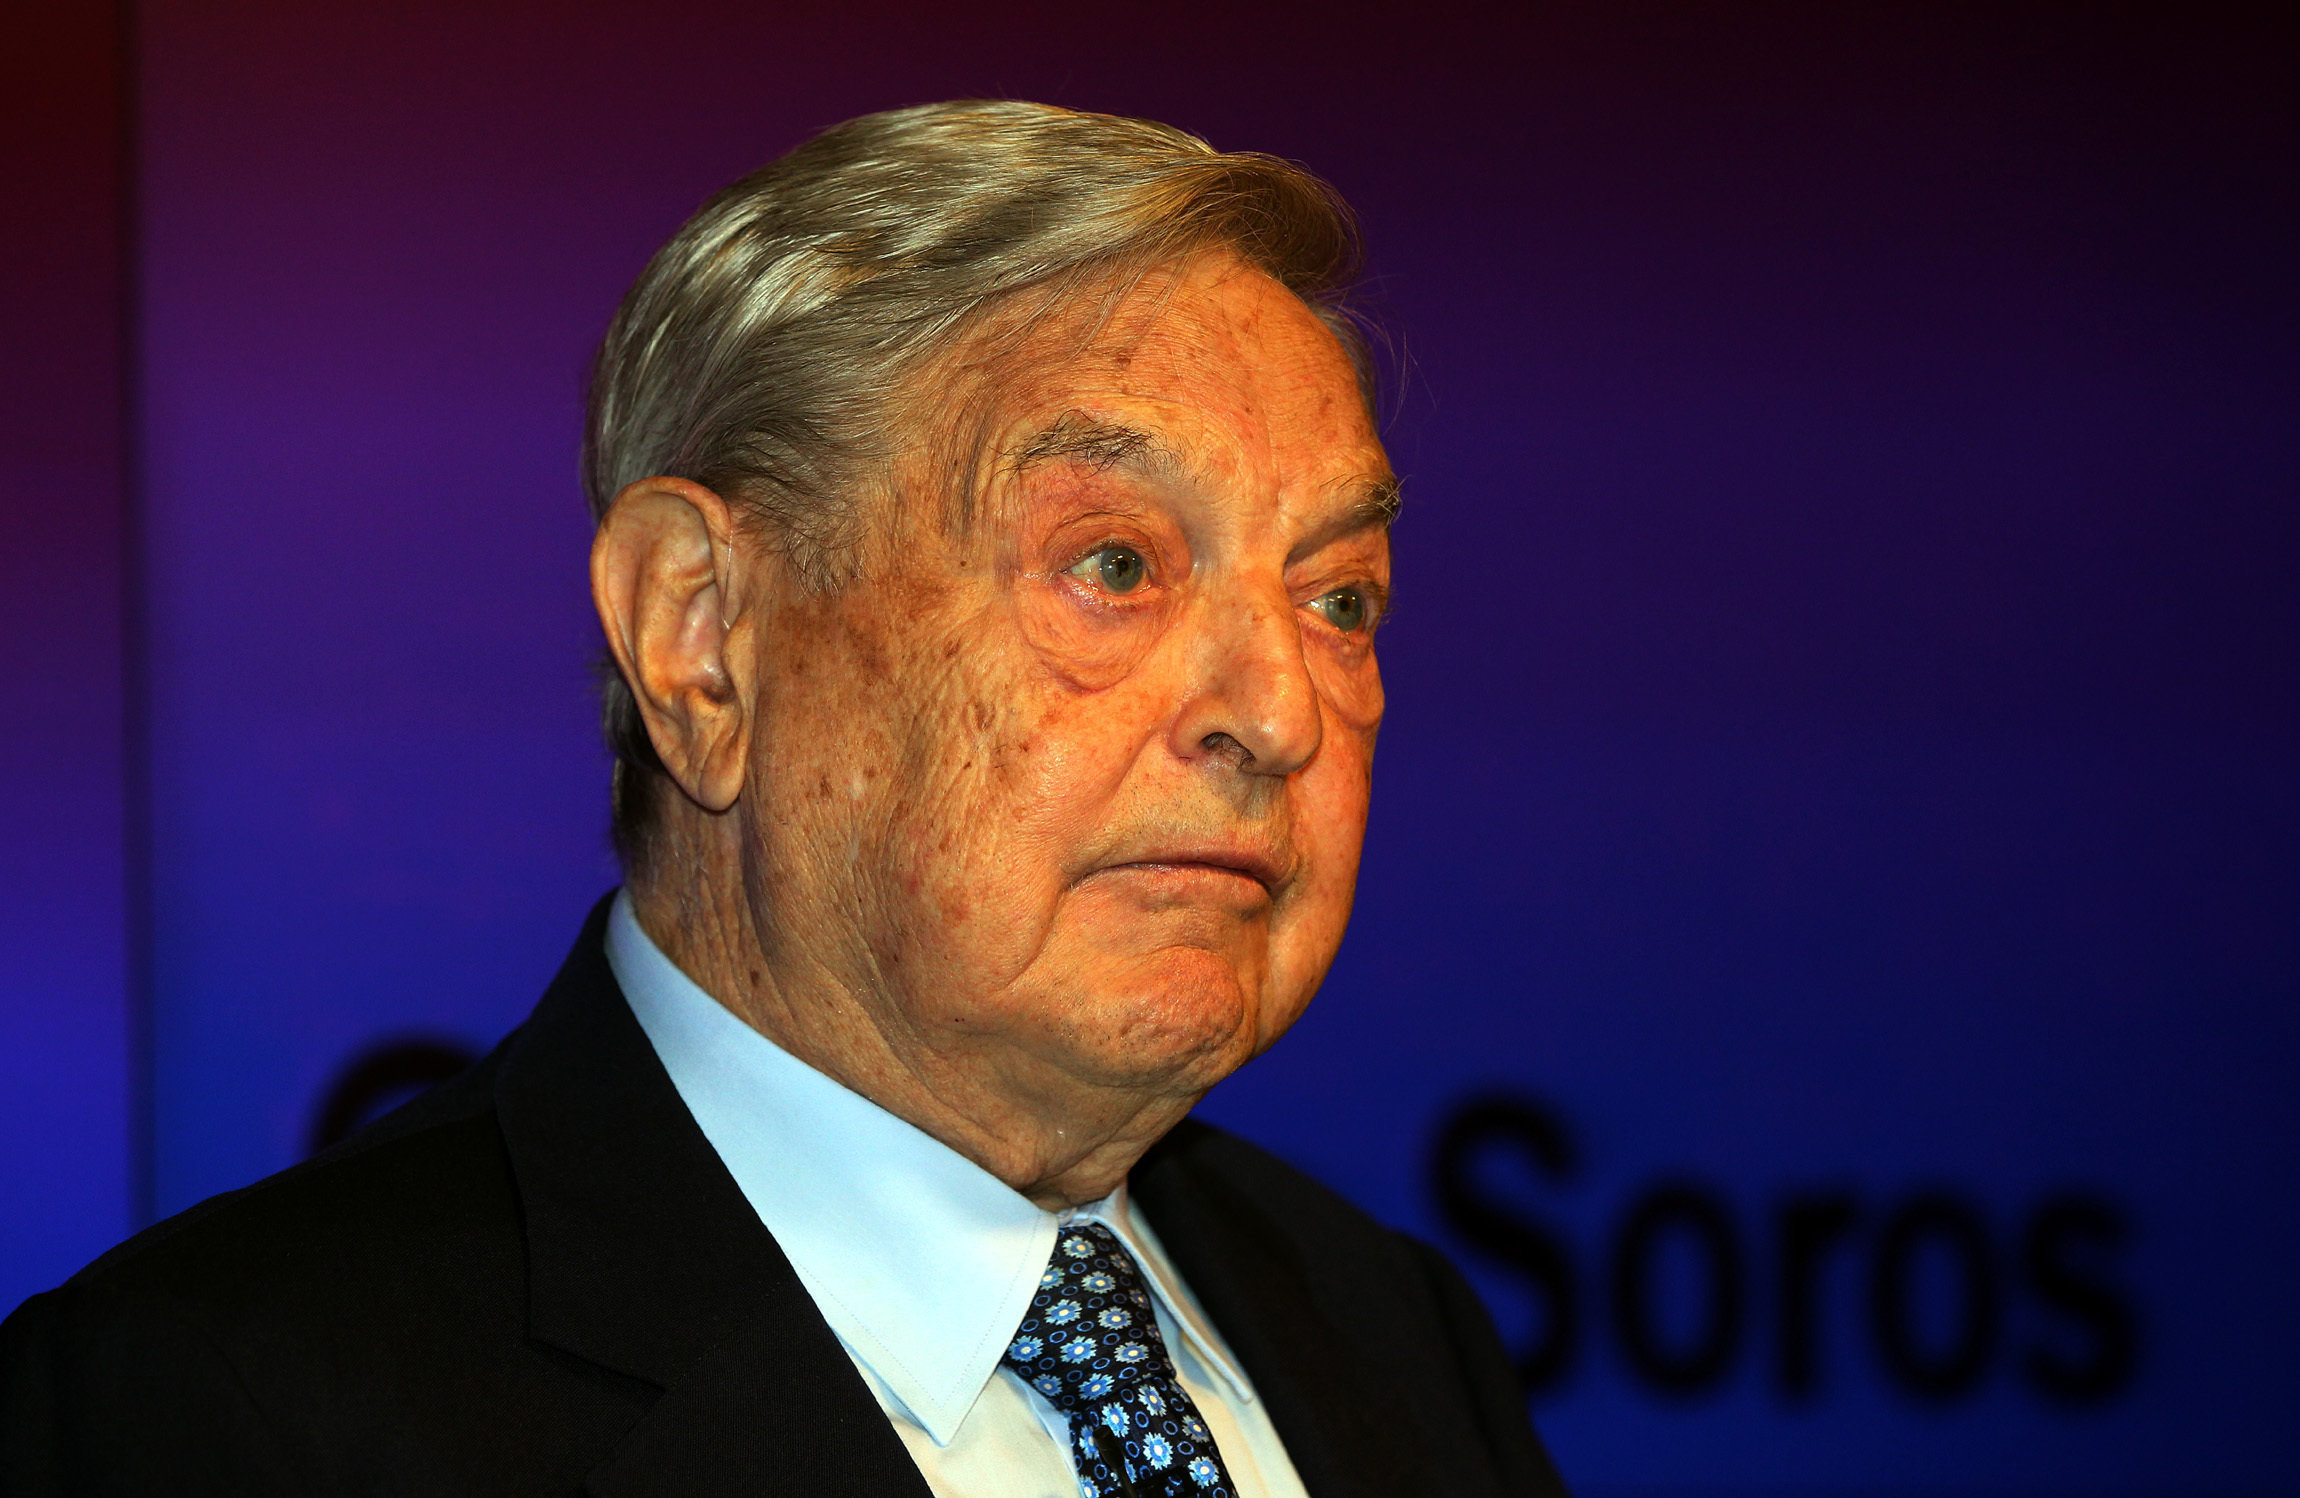 George Soros Commits Extra  £100,000 To Anti-Brexit Group In Wake Of Attacks Led By Right-Wing Press